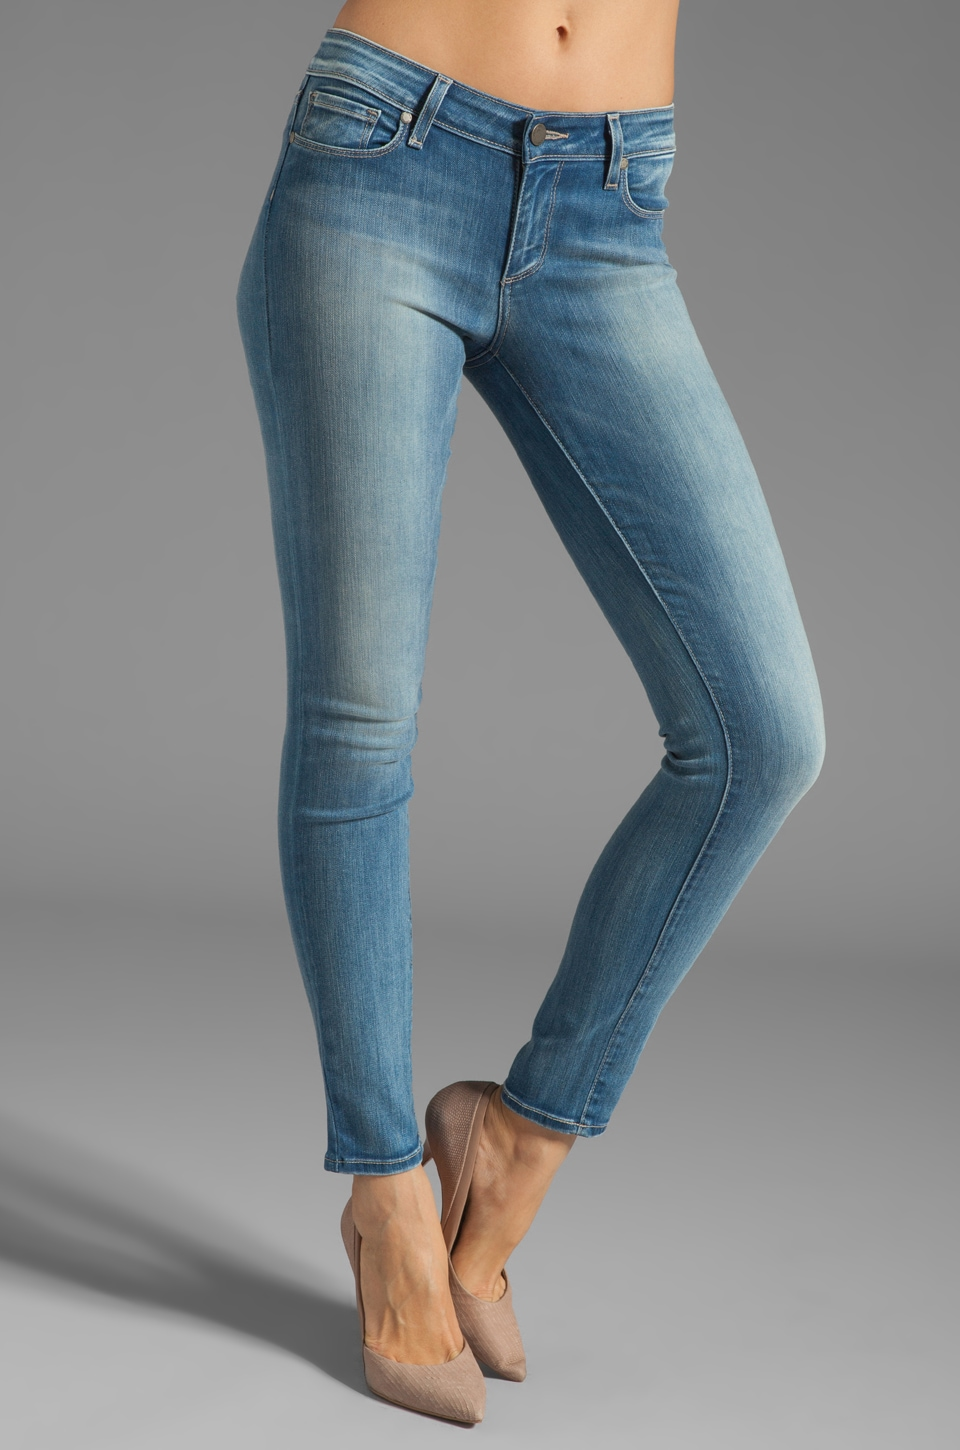 PAIGE Denim Verdugo Ultra Skinny in Gratitude